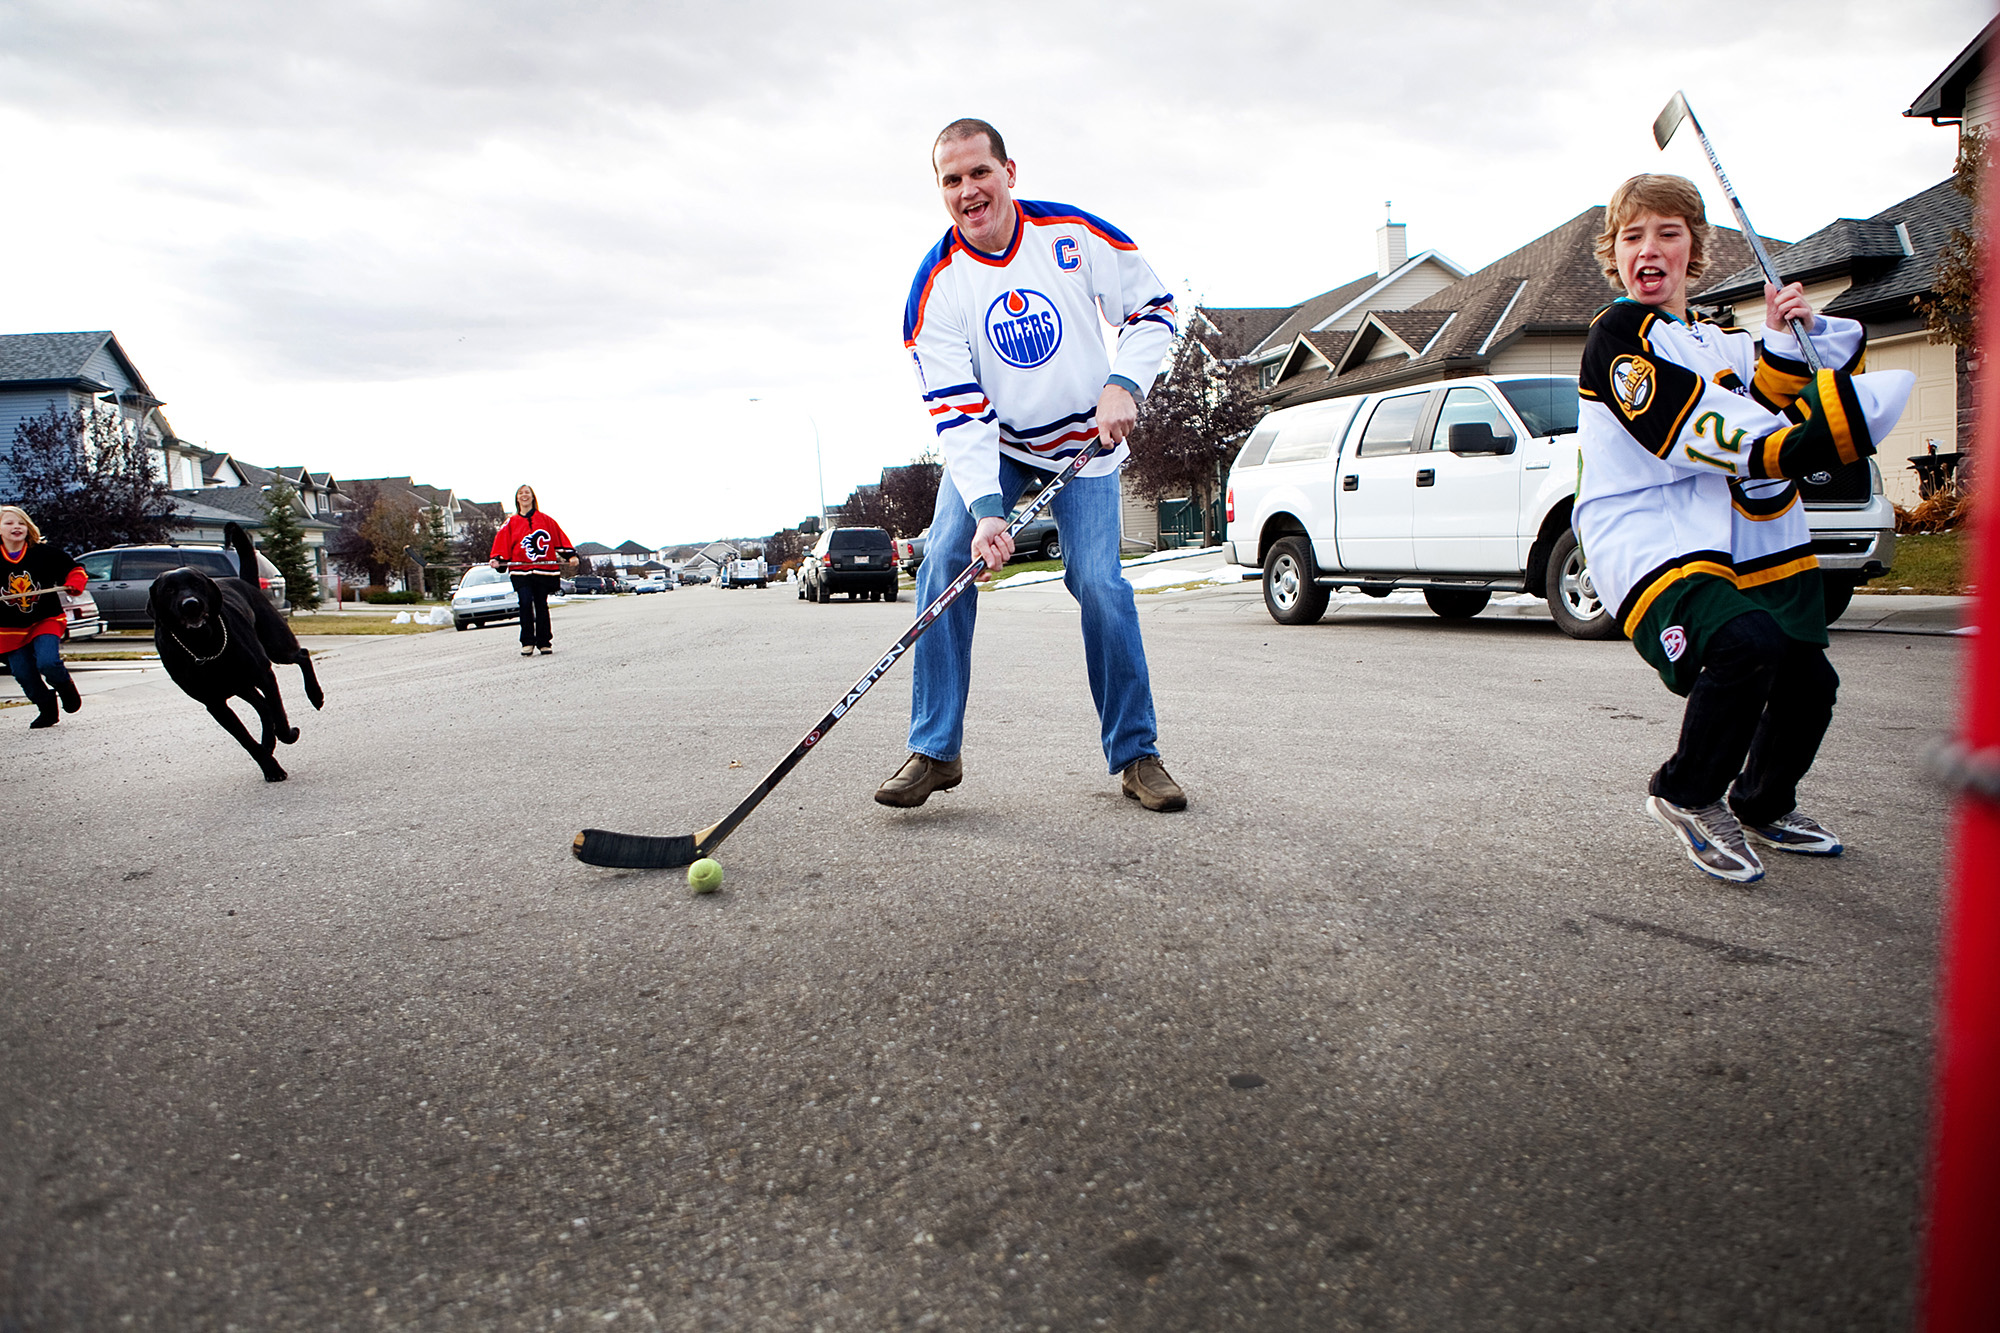 Family playing street hockey together